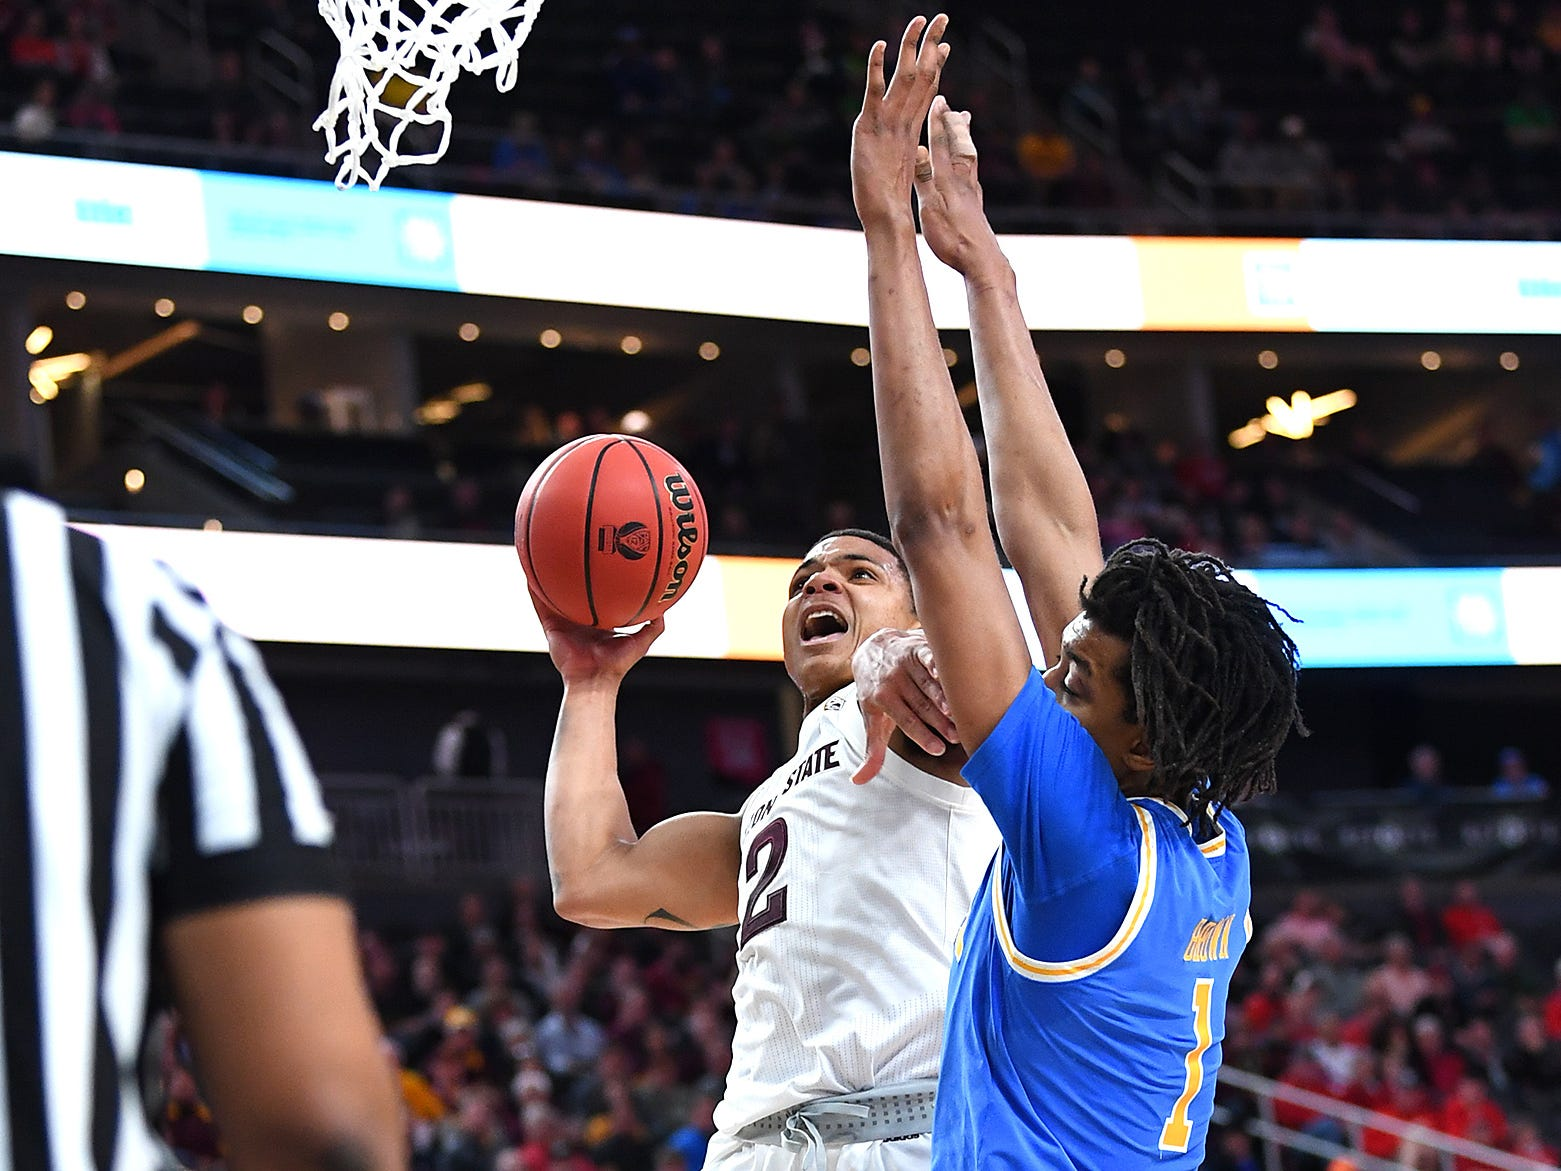 Mar 14, 2019; Las Vegas, NV, United States; Arizona State Sun Devils guard Rob Edwards (2) shoots as UCLA Bruins center Moses Brown (1) defends during the first half of a Pac-12 conference tournament game at T-Mobile Arena.